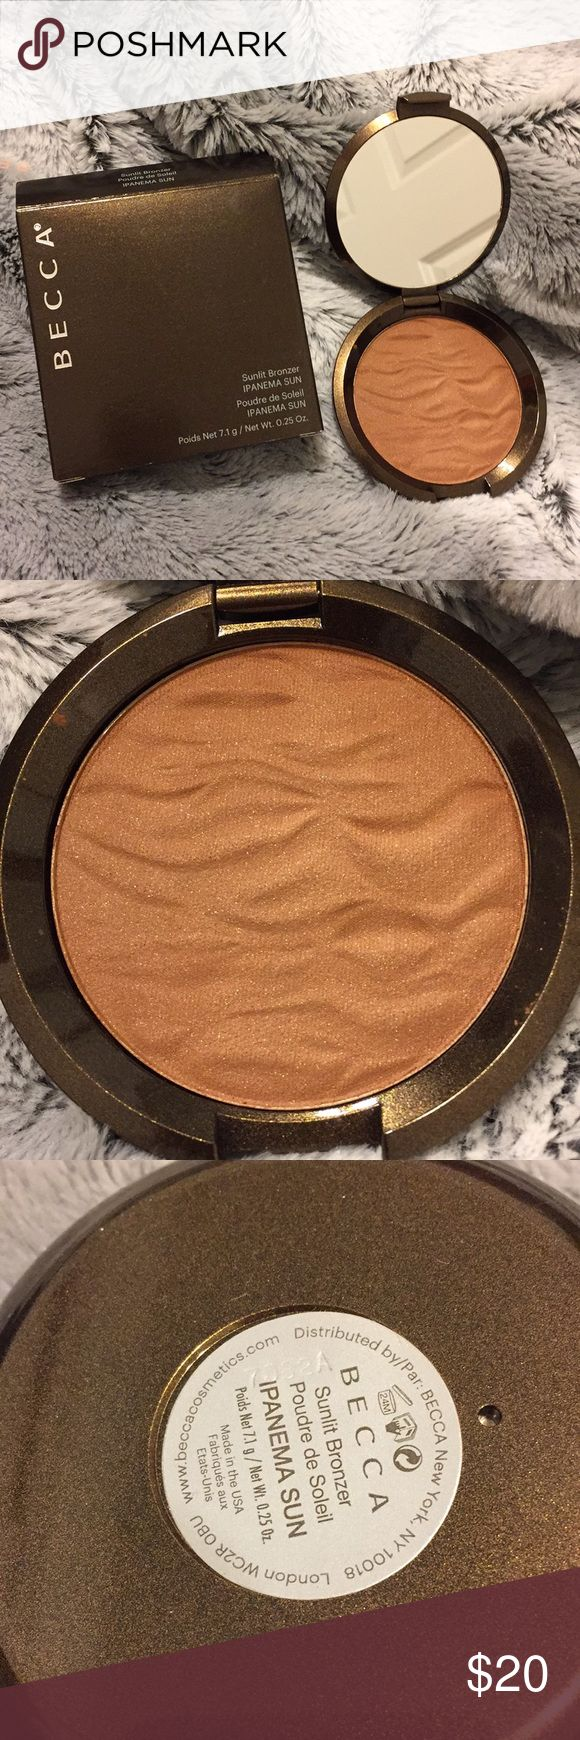 BECCA BRONZER Becca Sunlit Bronzer in IPANEMA SUN Brand new, never swatched  Batch numbers provided for authenticity BECCA Makeup Bronzer